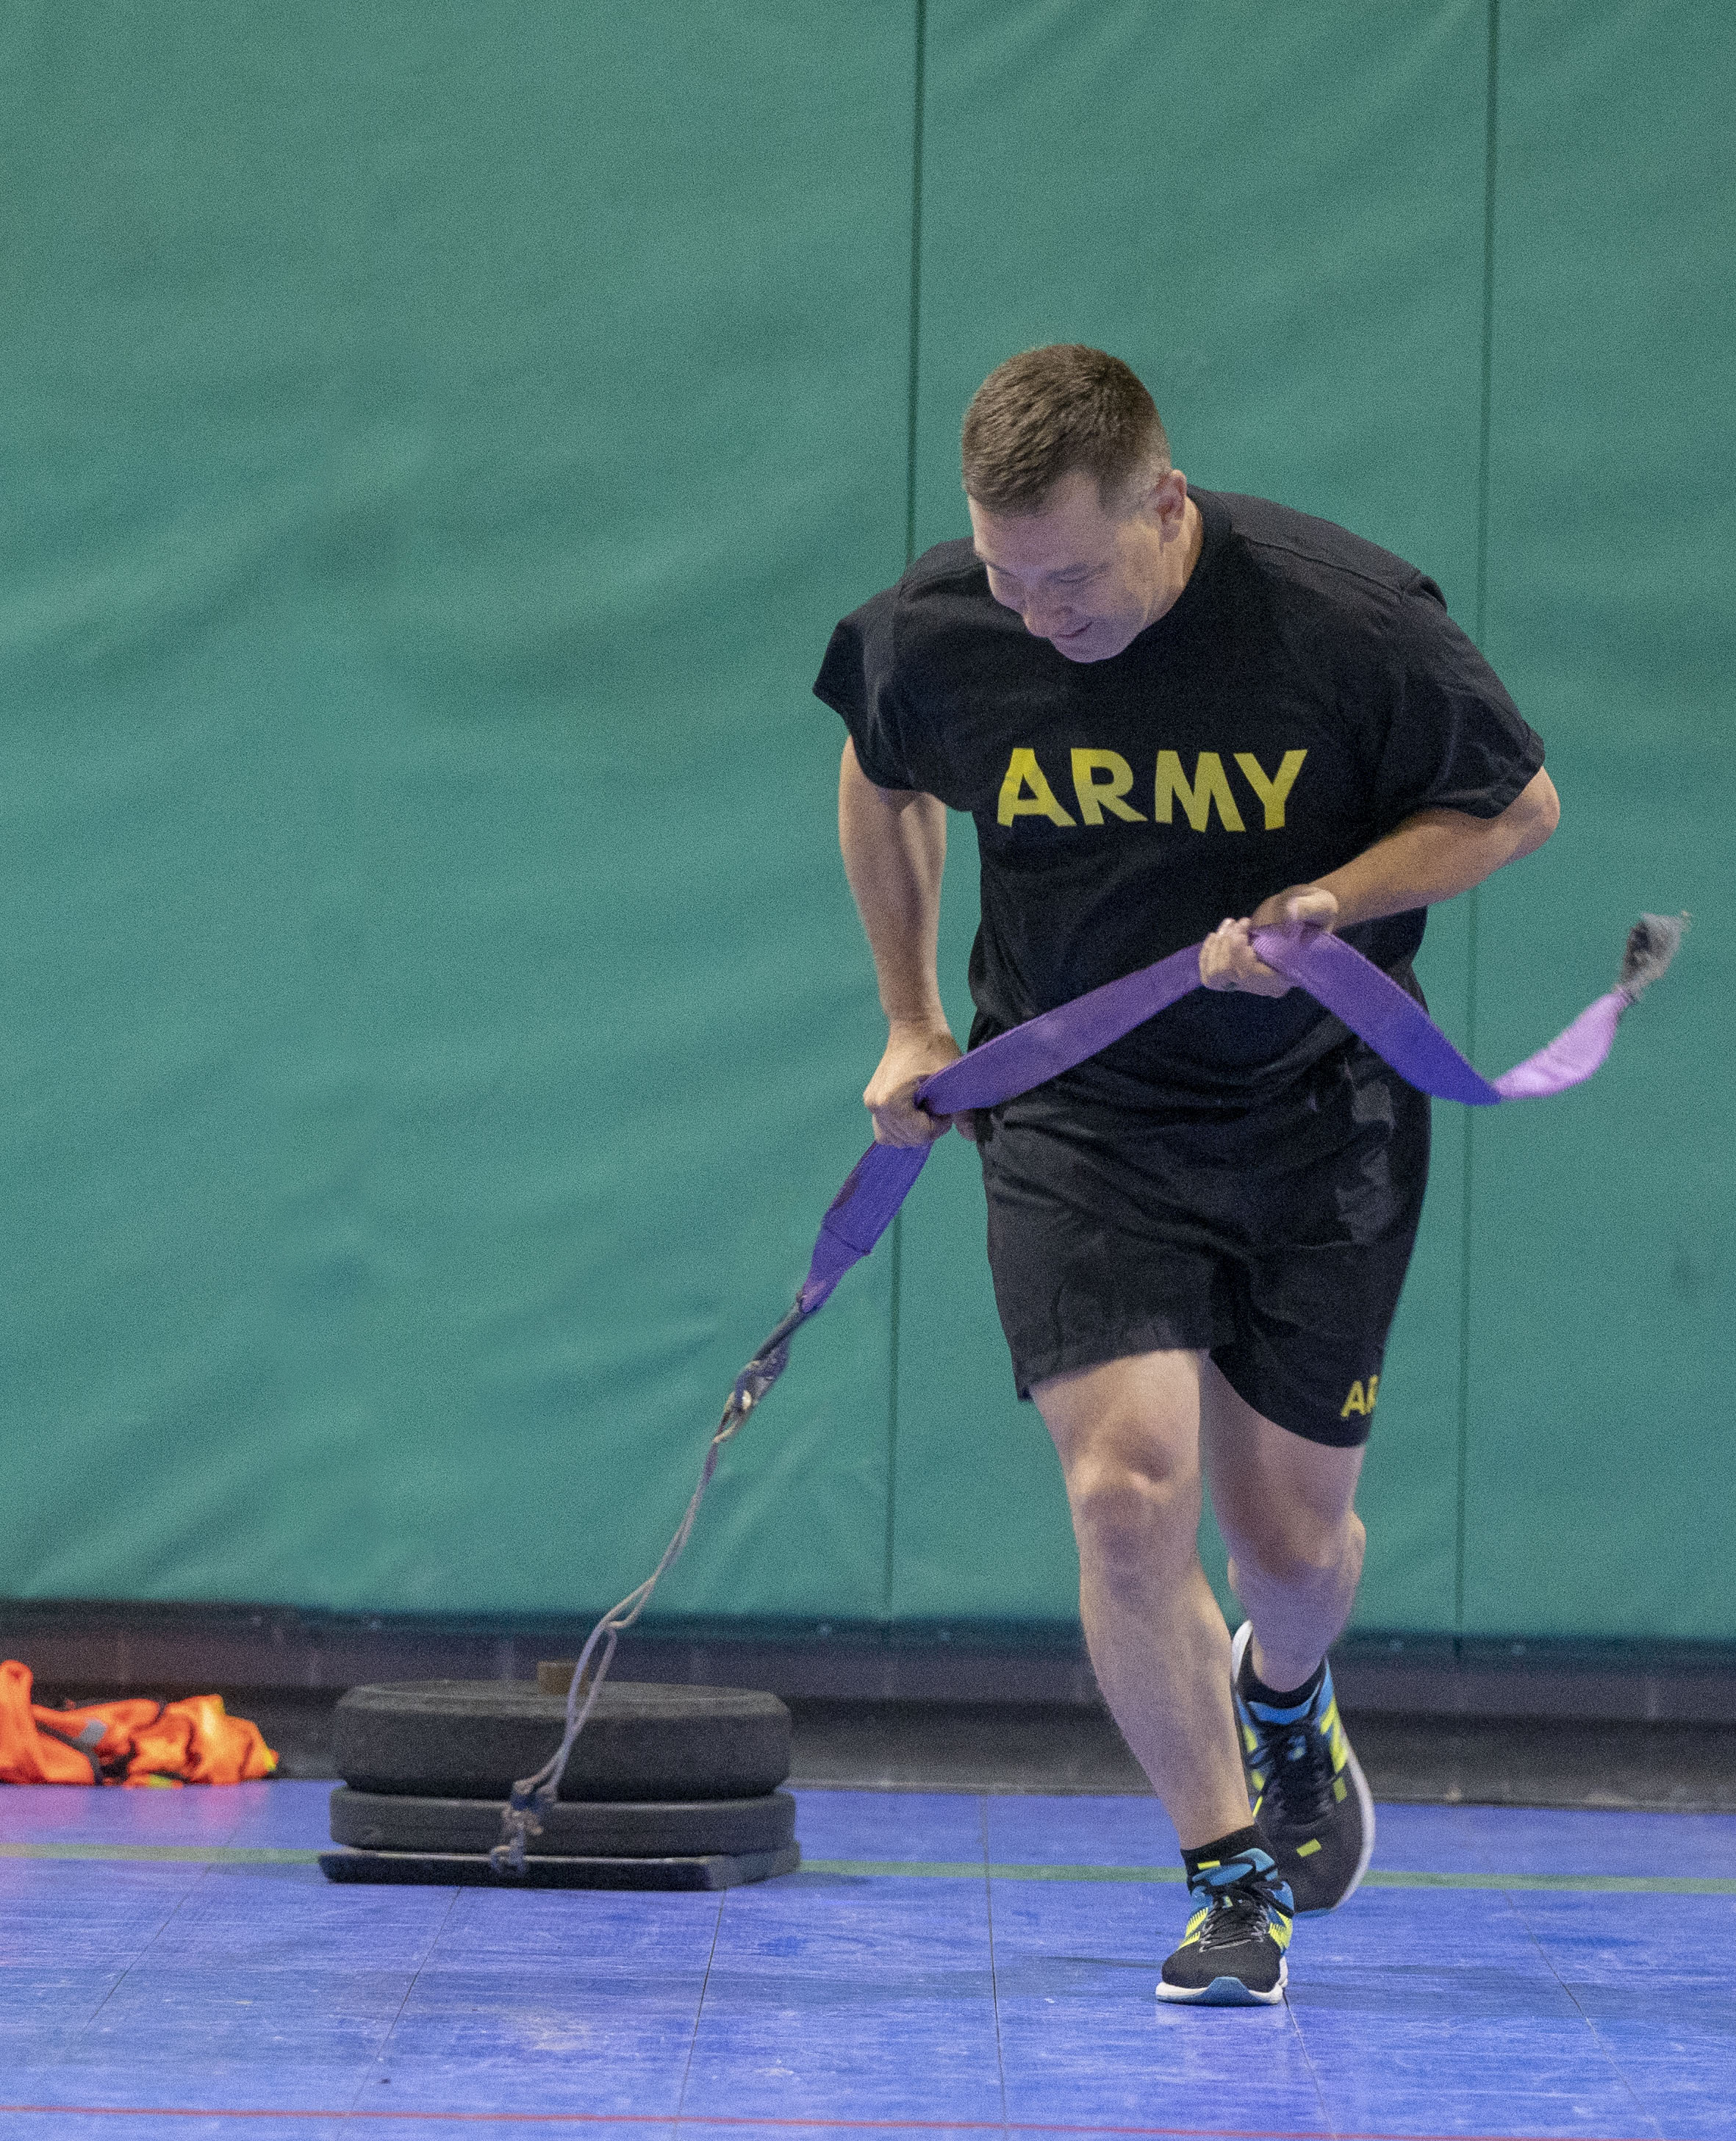 Members of the Senior Enlisted Leader Conference learn new events to be included in the Army Combat Fitness Test during a training exercise held at Camp Mabry, Texas on October 25, 2019. (U.S. Army National Guard Photo by Staff Sgt. Mark Otte)